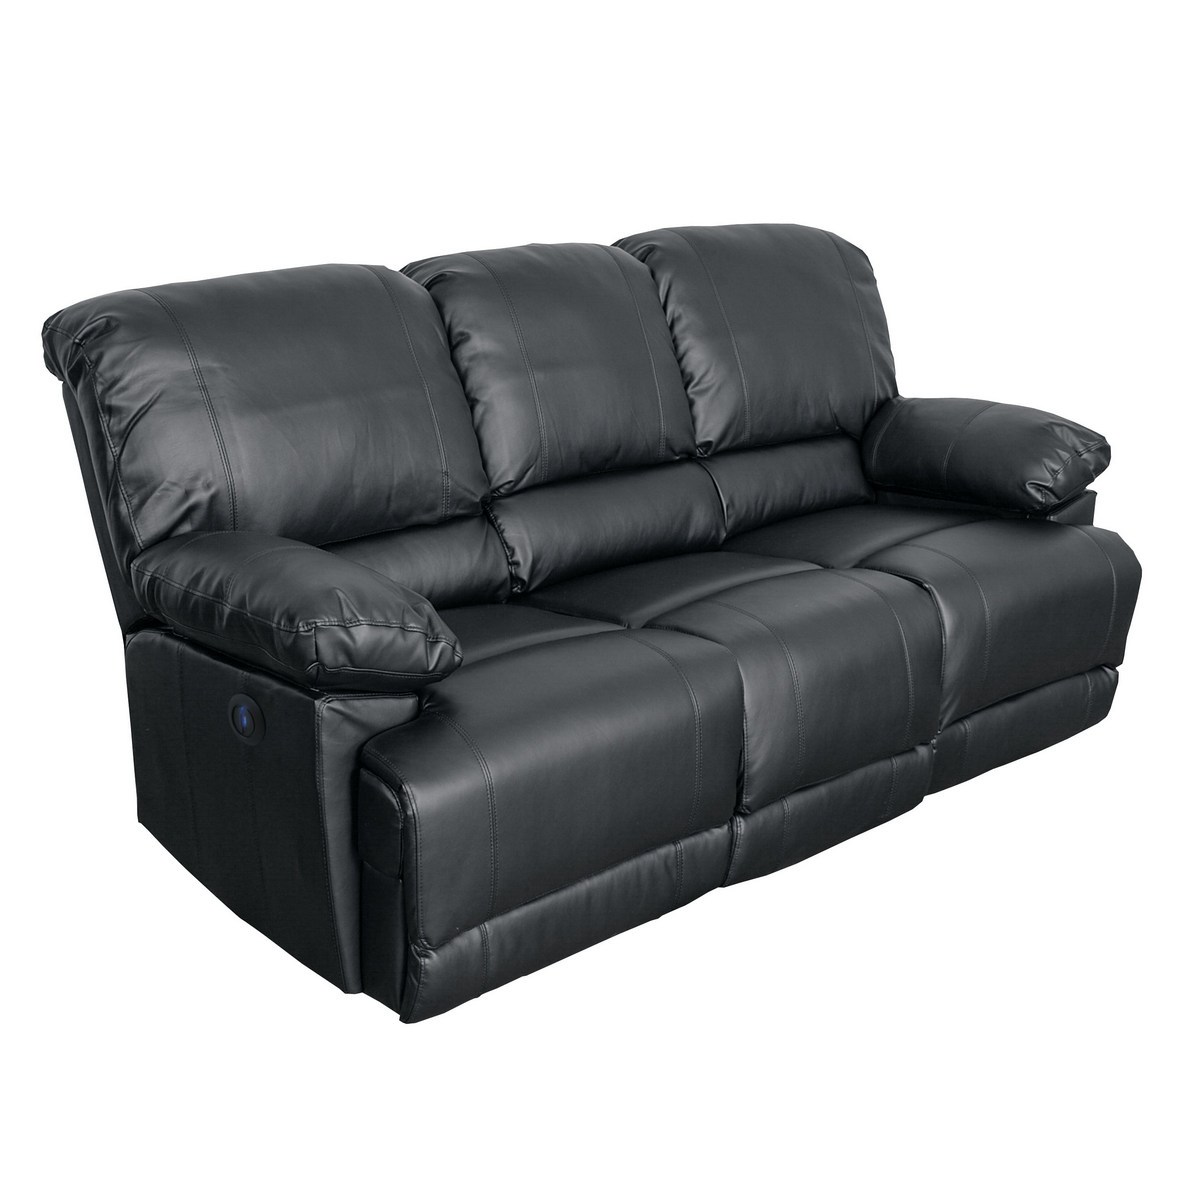 Corliving Lea Black Bonded Leather Power Reclining Sofa Usb Port